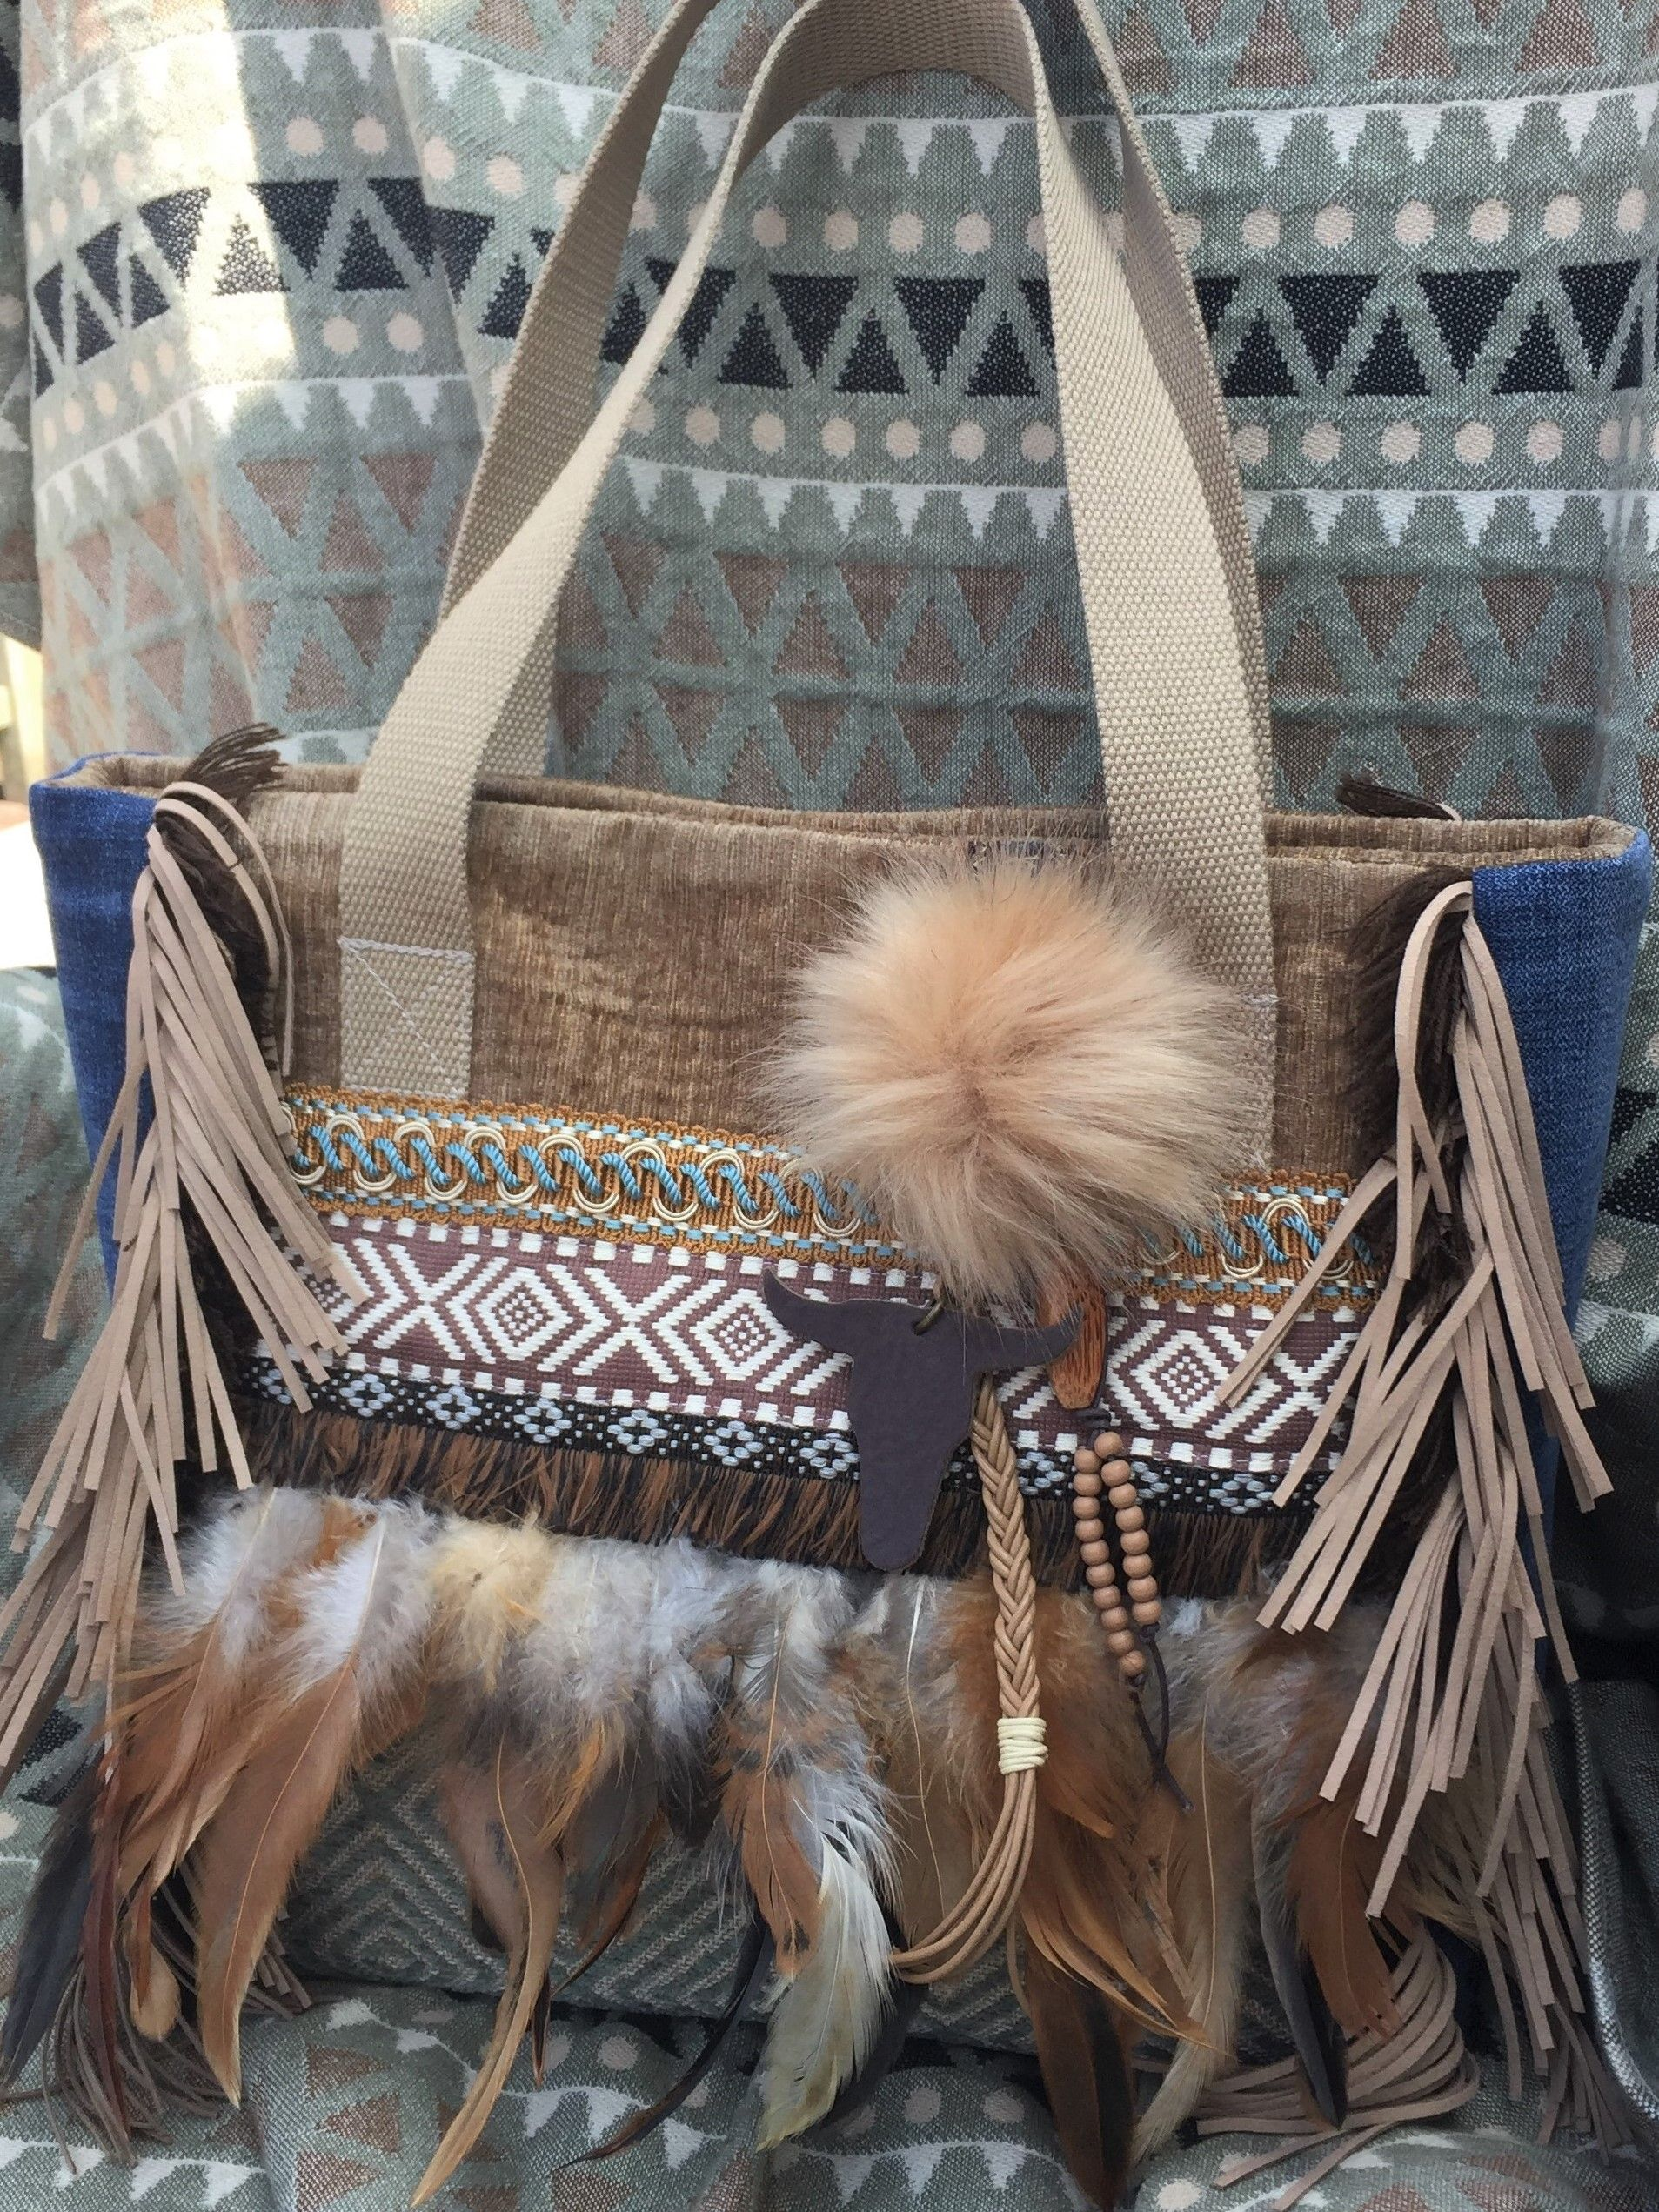 Style FeathersCountry Great In Tote With Western Bag vwOmN8n0